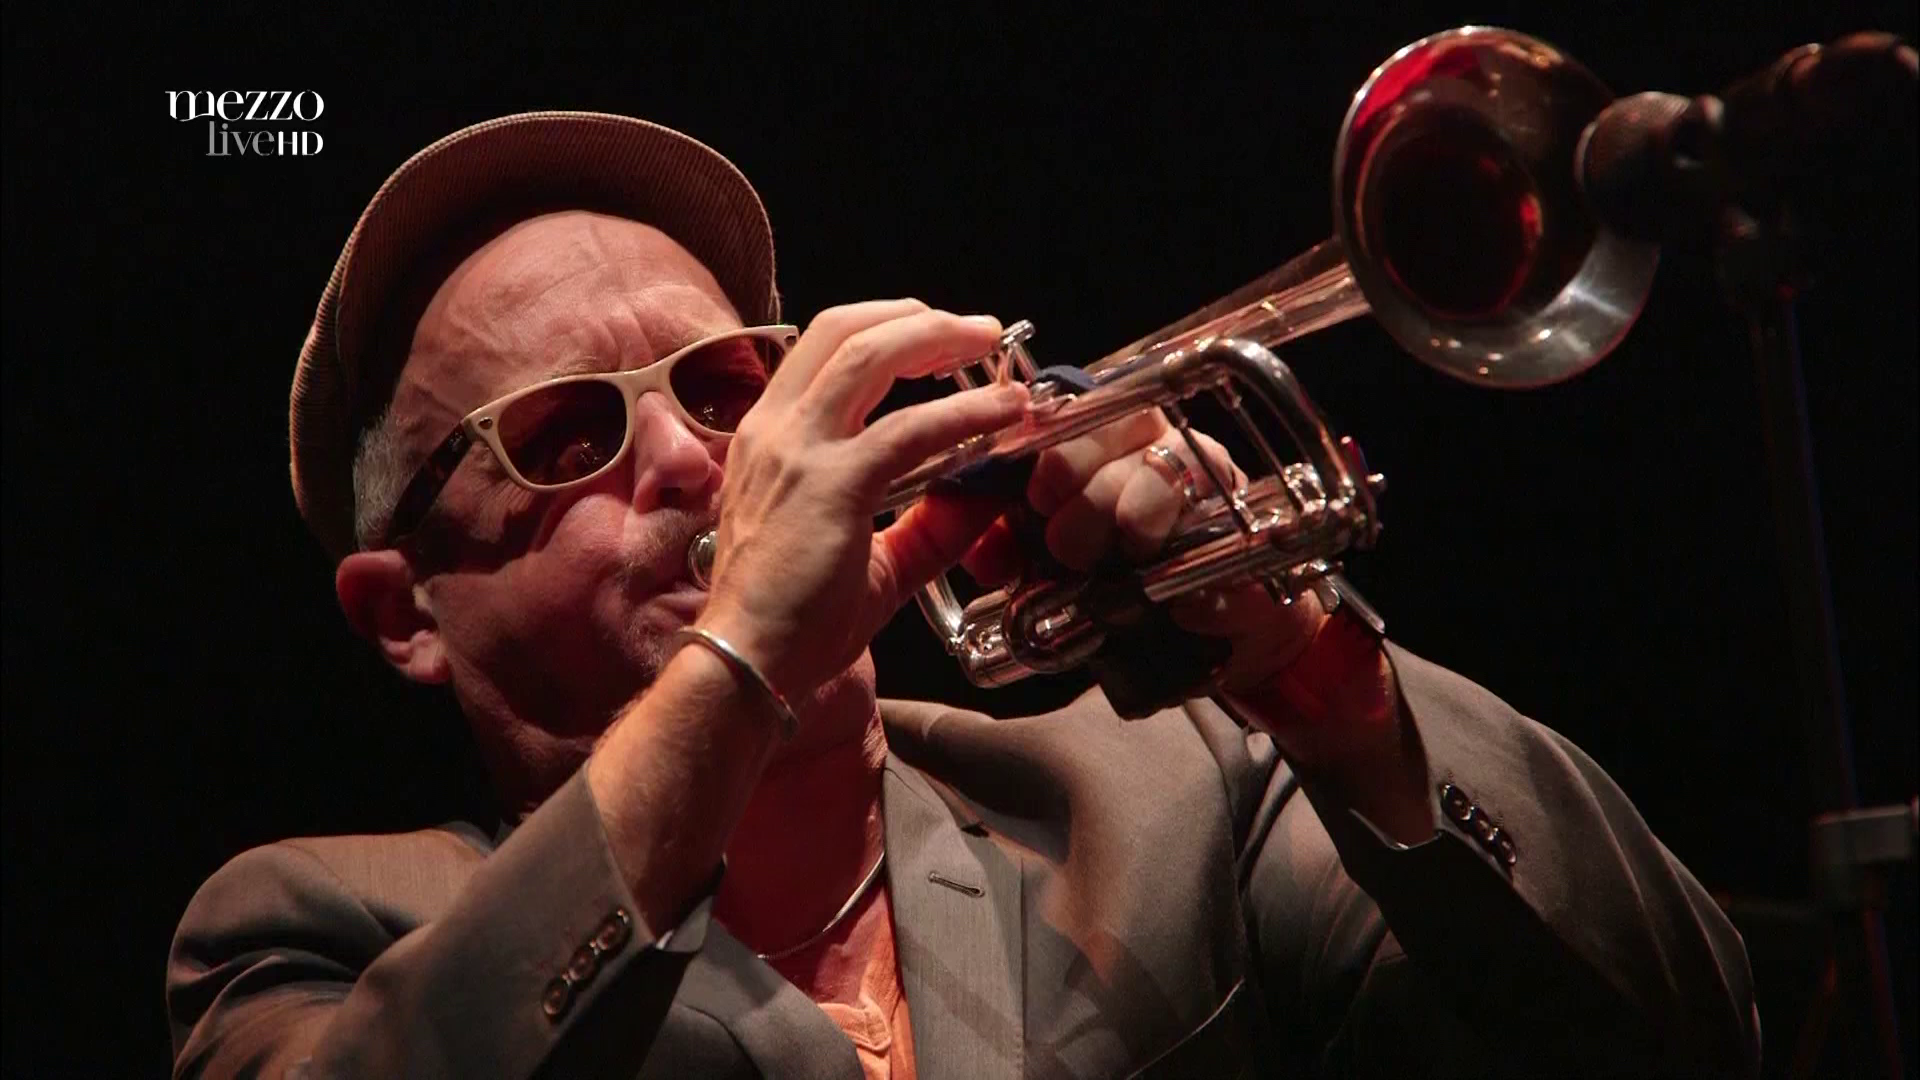 2015 Sound Prints feat. Dave Douglas & Joe Lovano - At Roma Jazz Festival [HDTV 1080i] 2